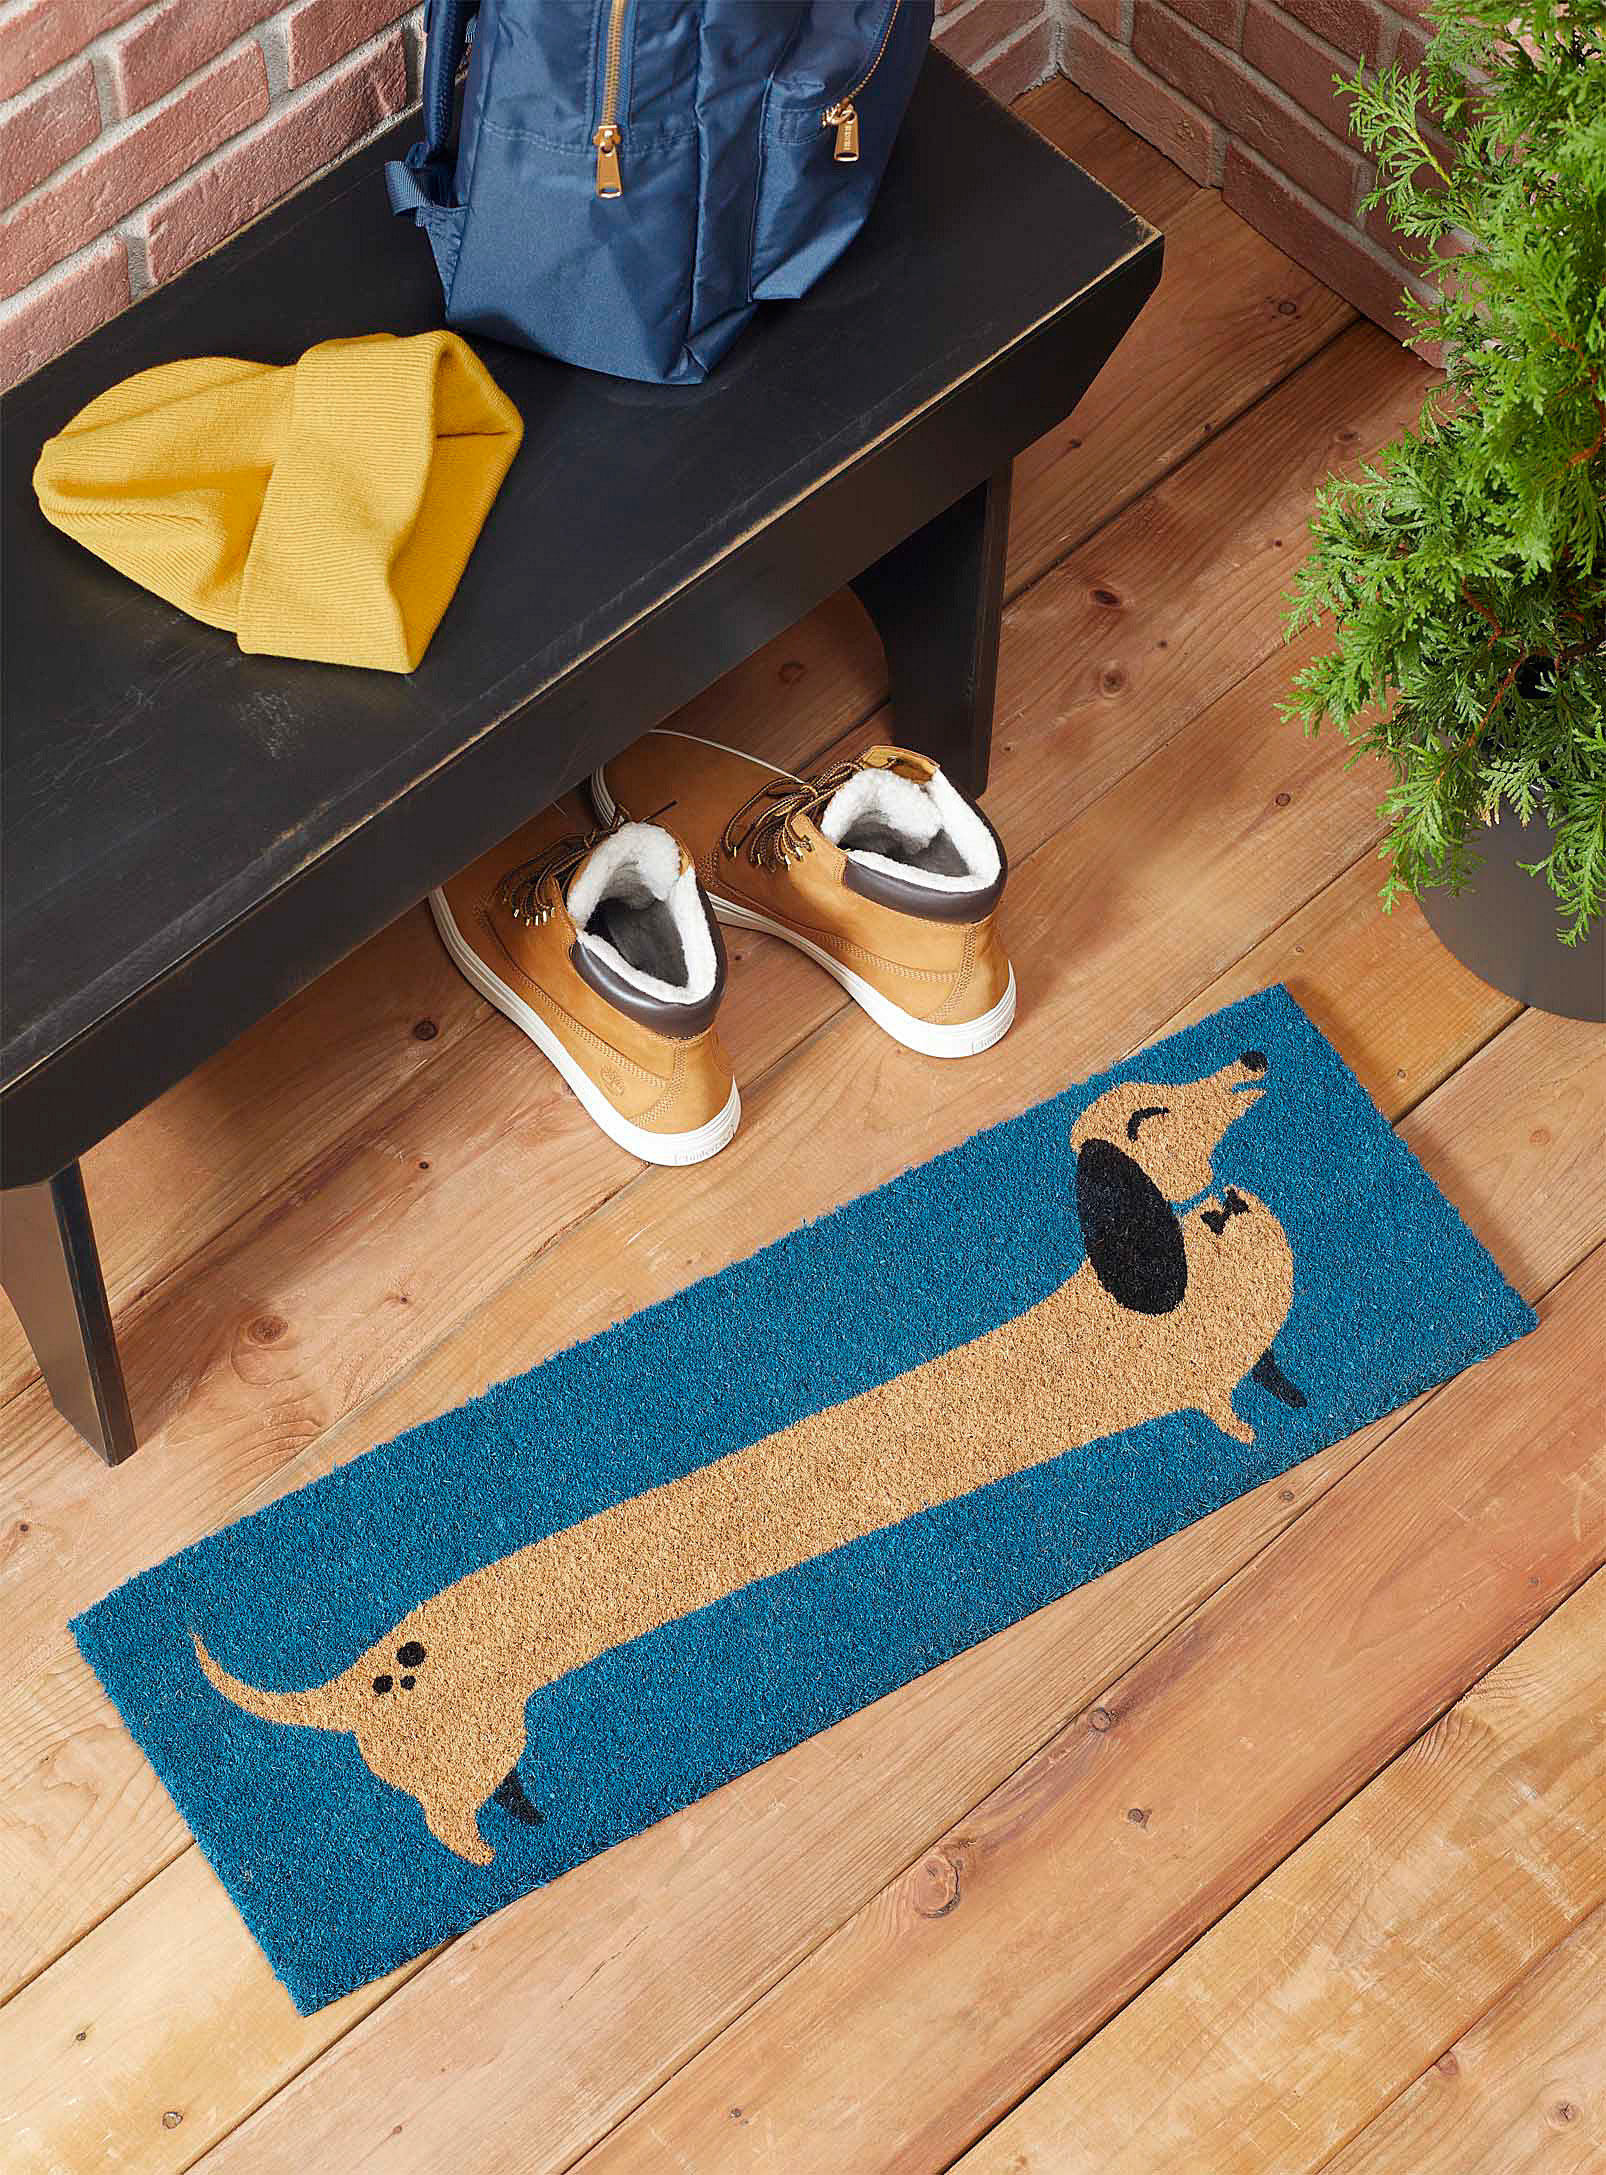 A wide doormat by some shoes with a wiener dog on it